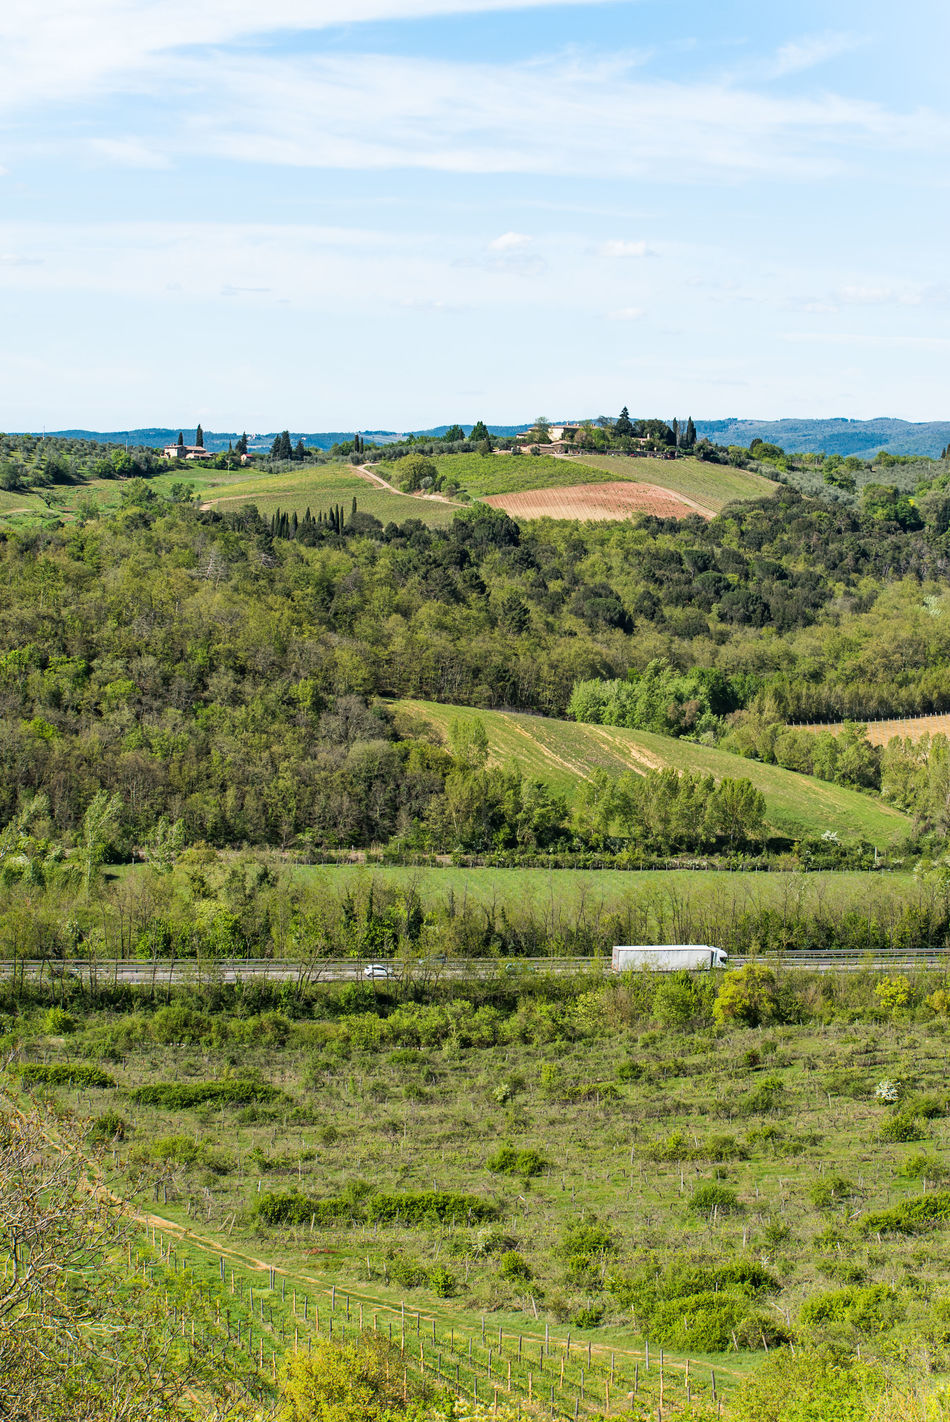 Agriculture Beauty In Nature Day Farm Field Green Color Growth Landscape Nature No People Outdoors Rural Rural Scene Scenics Siena Sky Sky And Clouds Tranquil Scene Tranquility Tuscany Wine Winery